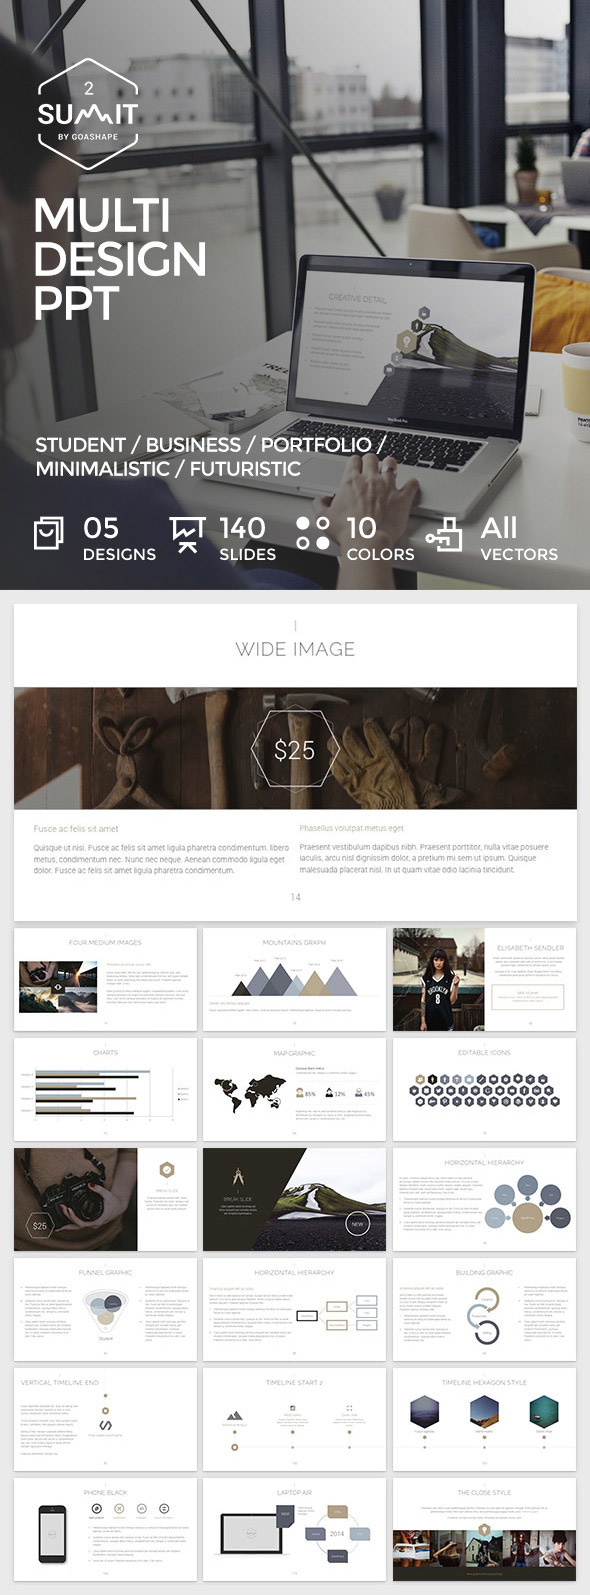 20 ppt templates for simple modern powerpoint presentations summit 2 minimal powerpoint template toneelgroepblik Gallery